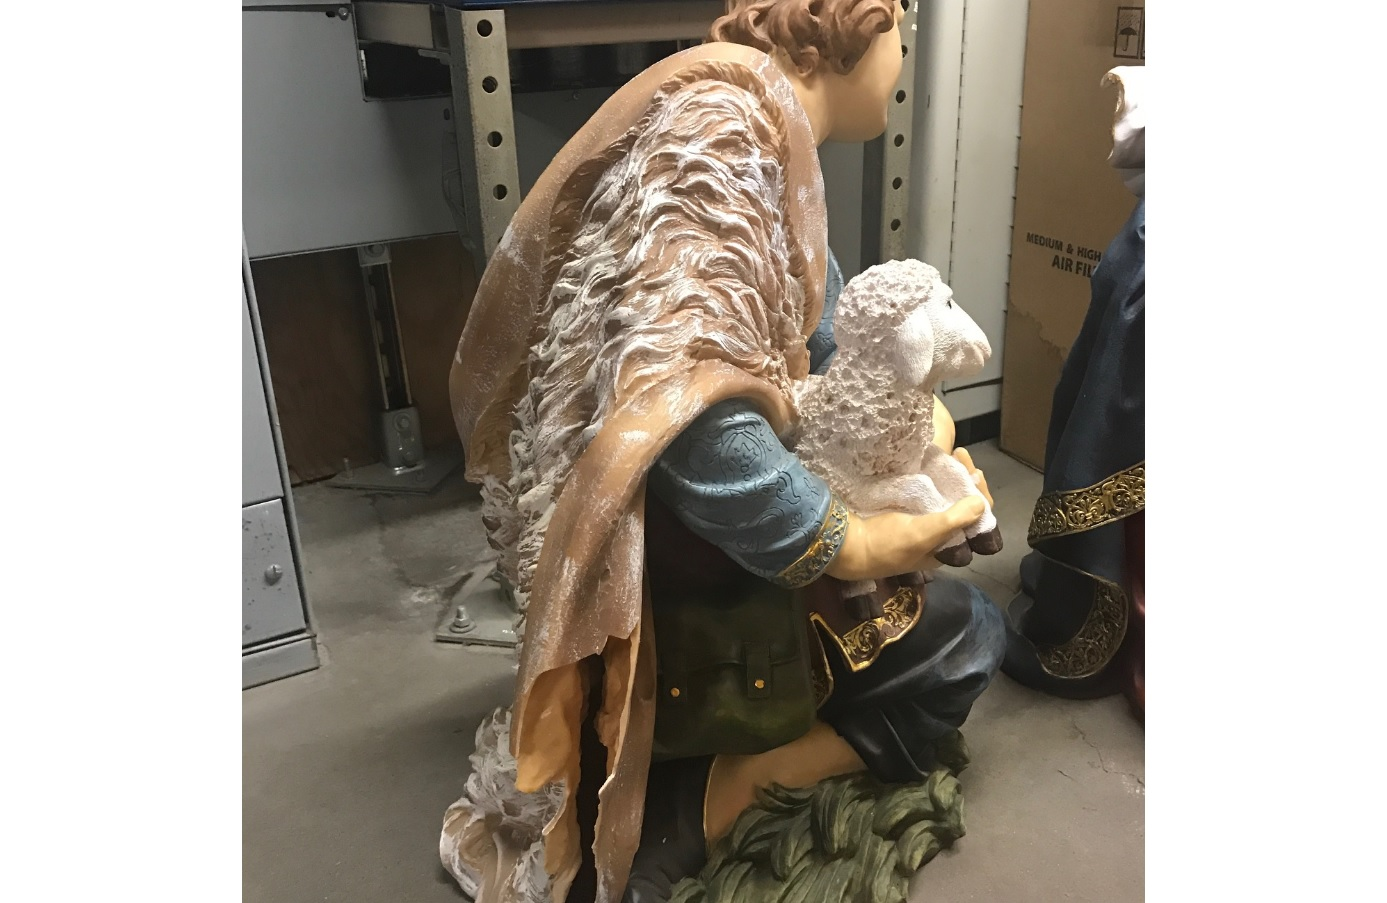 "<div class=""meta image-caption""><div class=""origin-logo origin-image none""><span>none</span></div><span class=""caption-text"">Basement broken into, nativity scene statues broken. (Photos provided by: Fresno attorney Michael Berdinella)</span></div>"